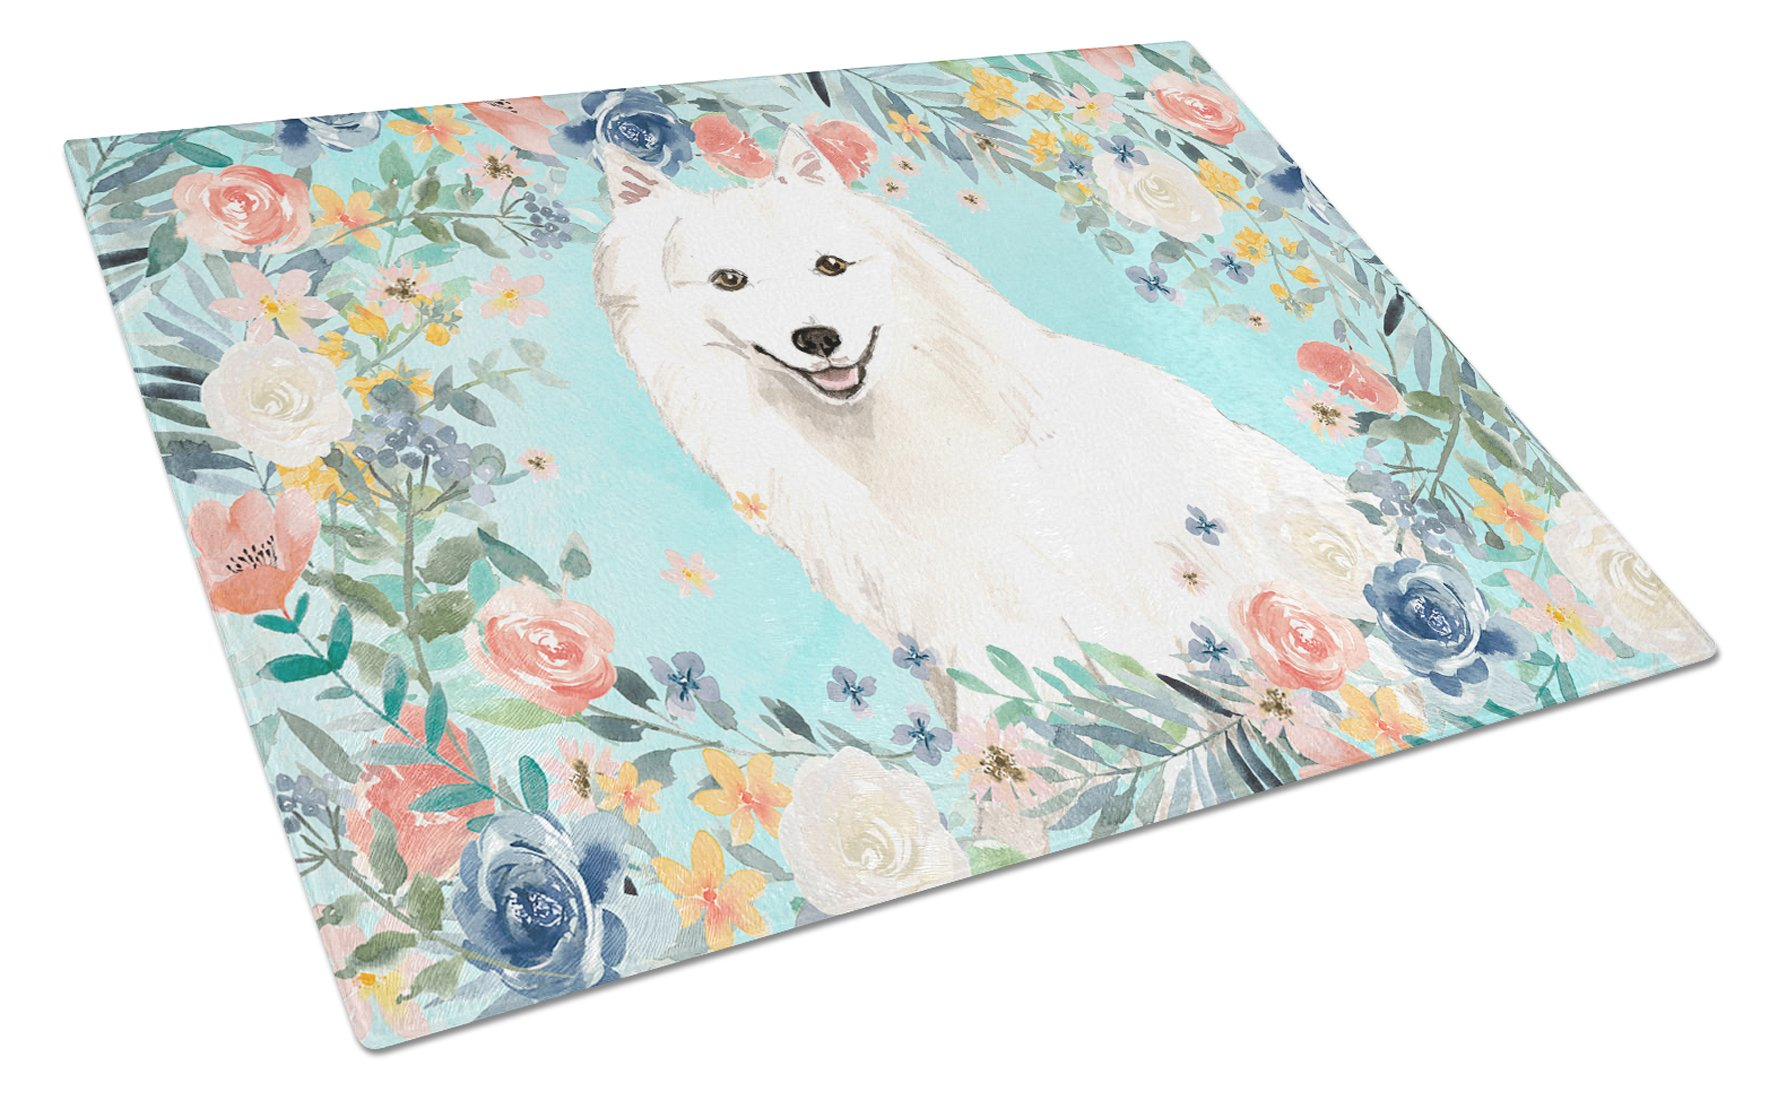 Japanese Spitz Glass Cutting Board Large CK3422LCB by Caroline's Treasures